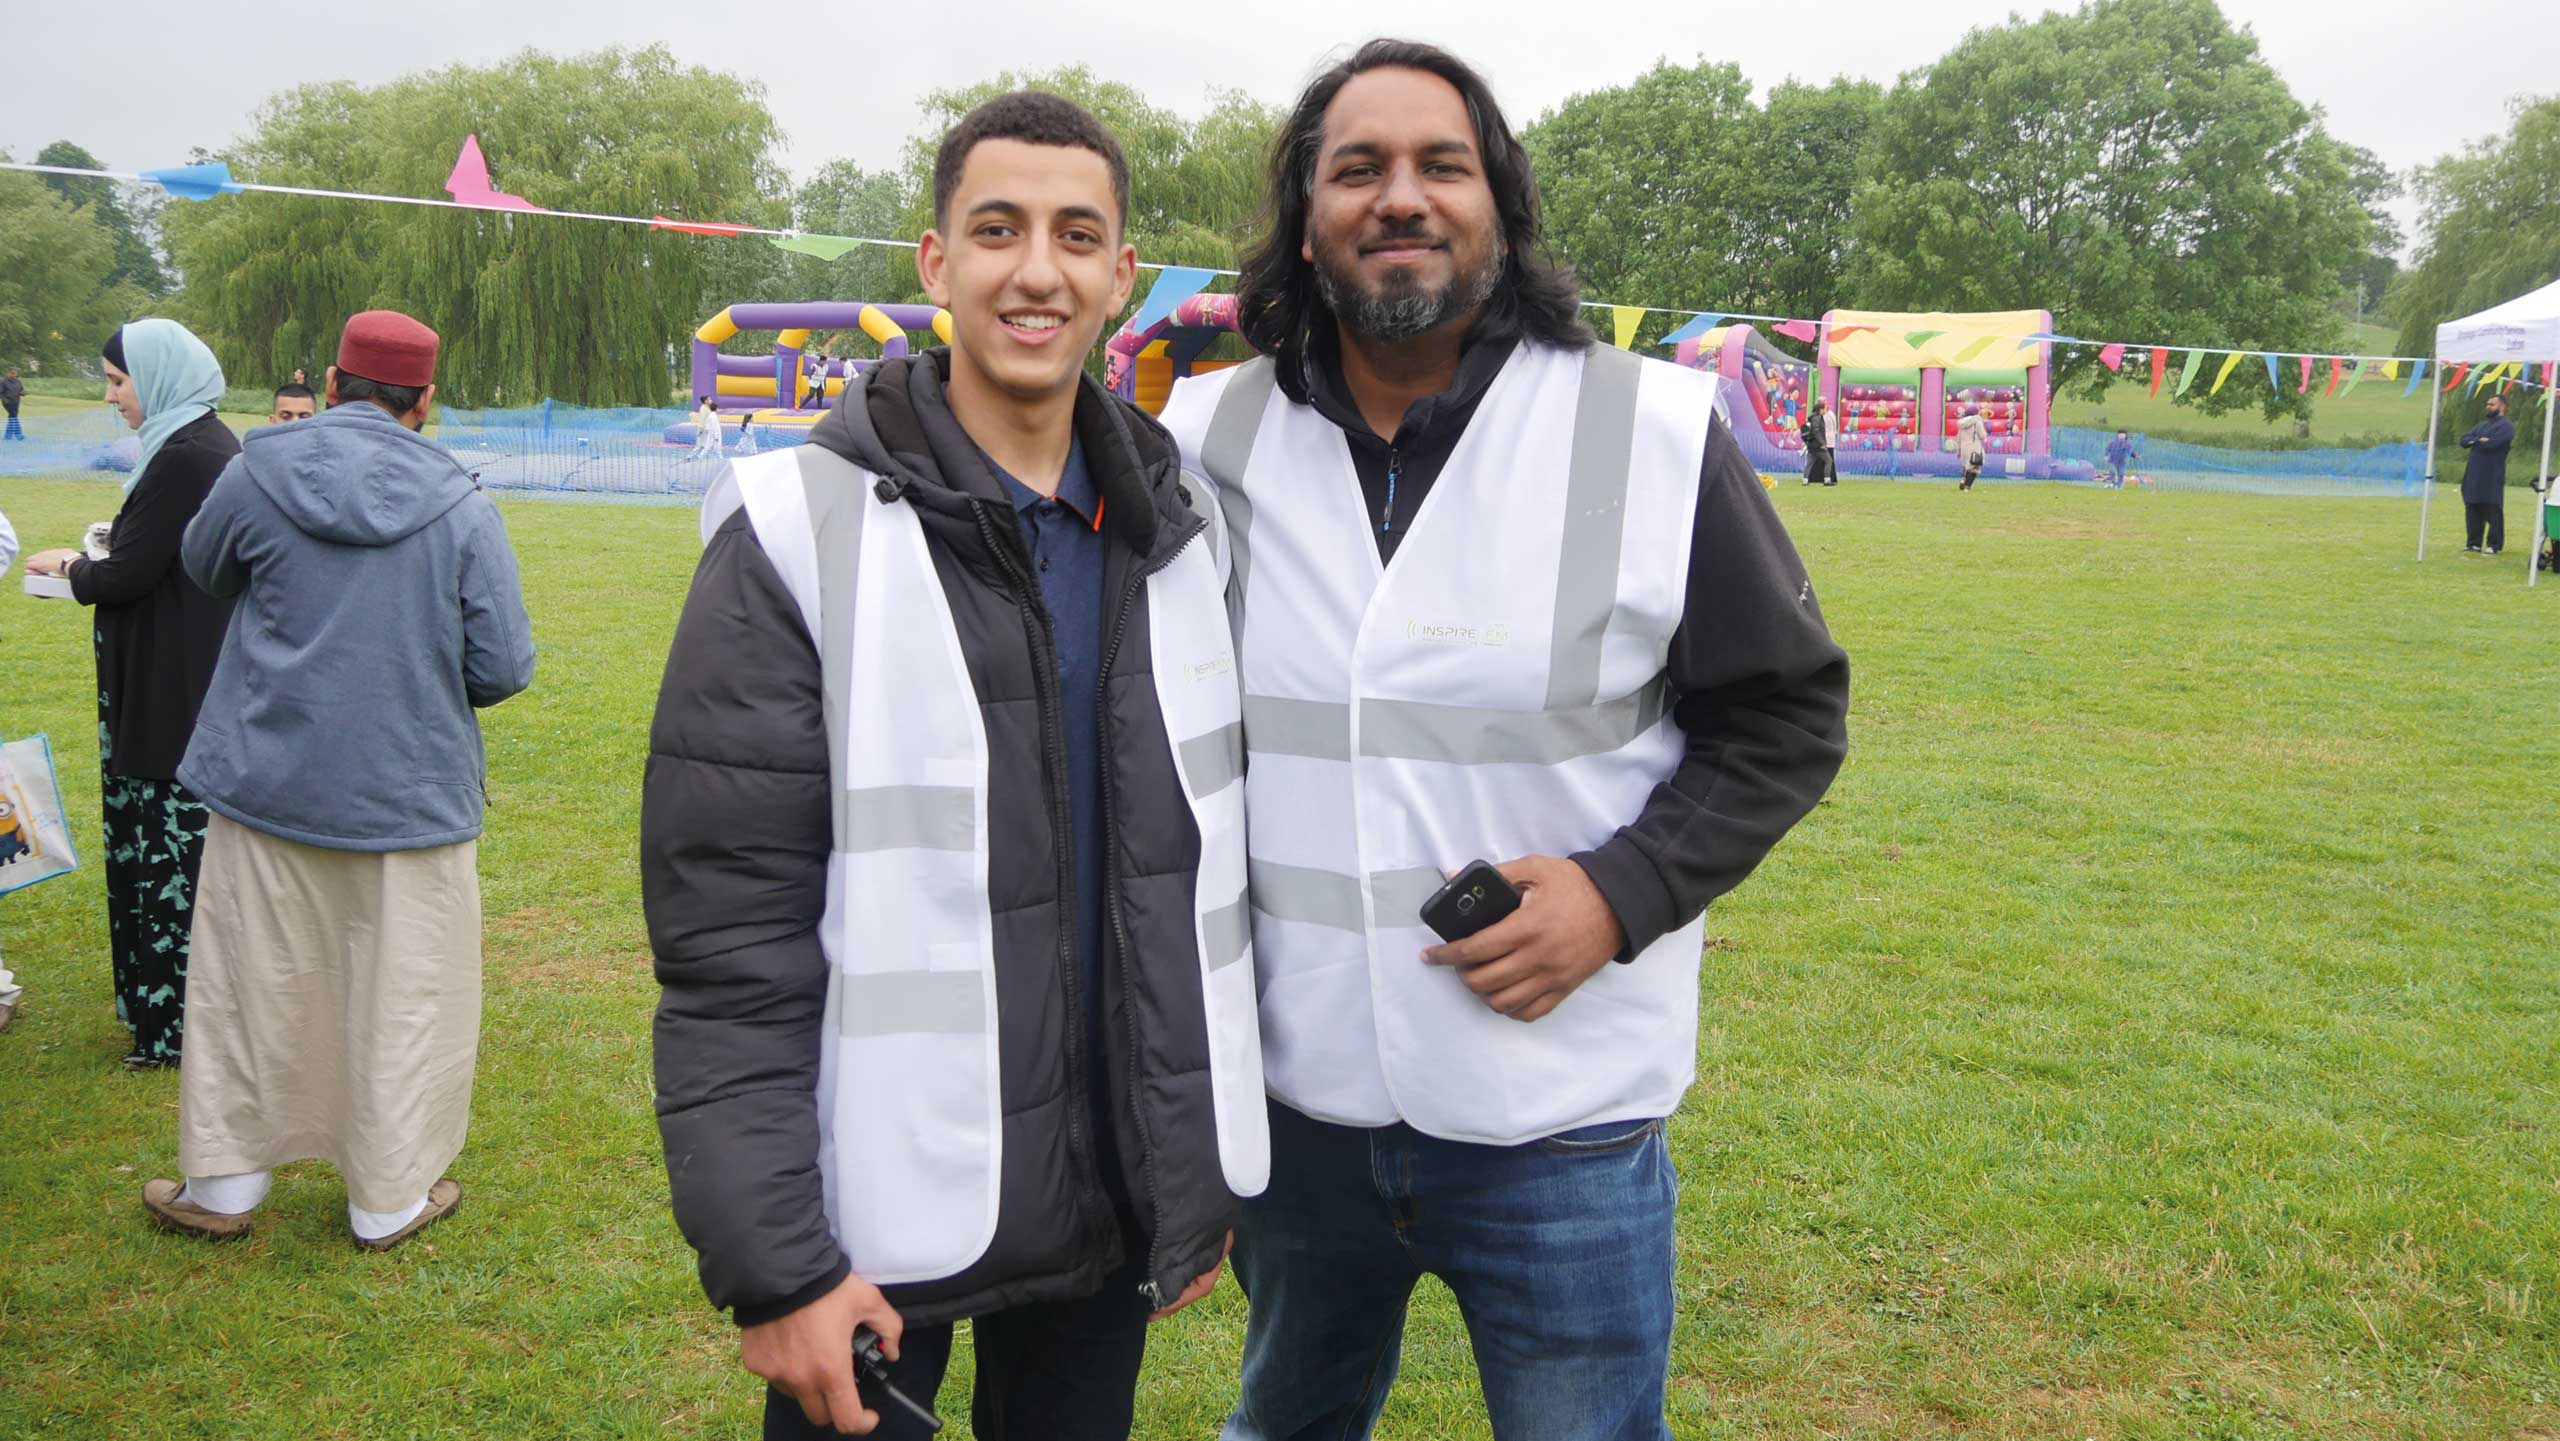 photo from Inspire Eid in June with two volunteers smiling